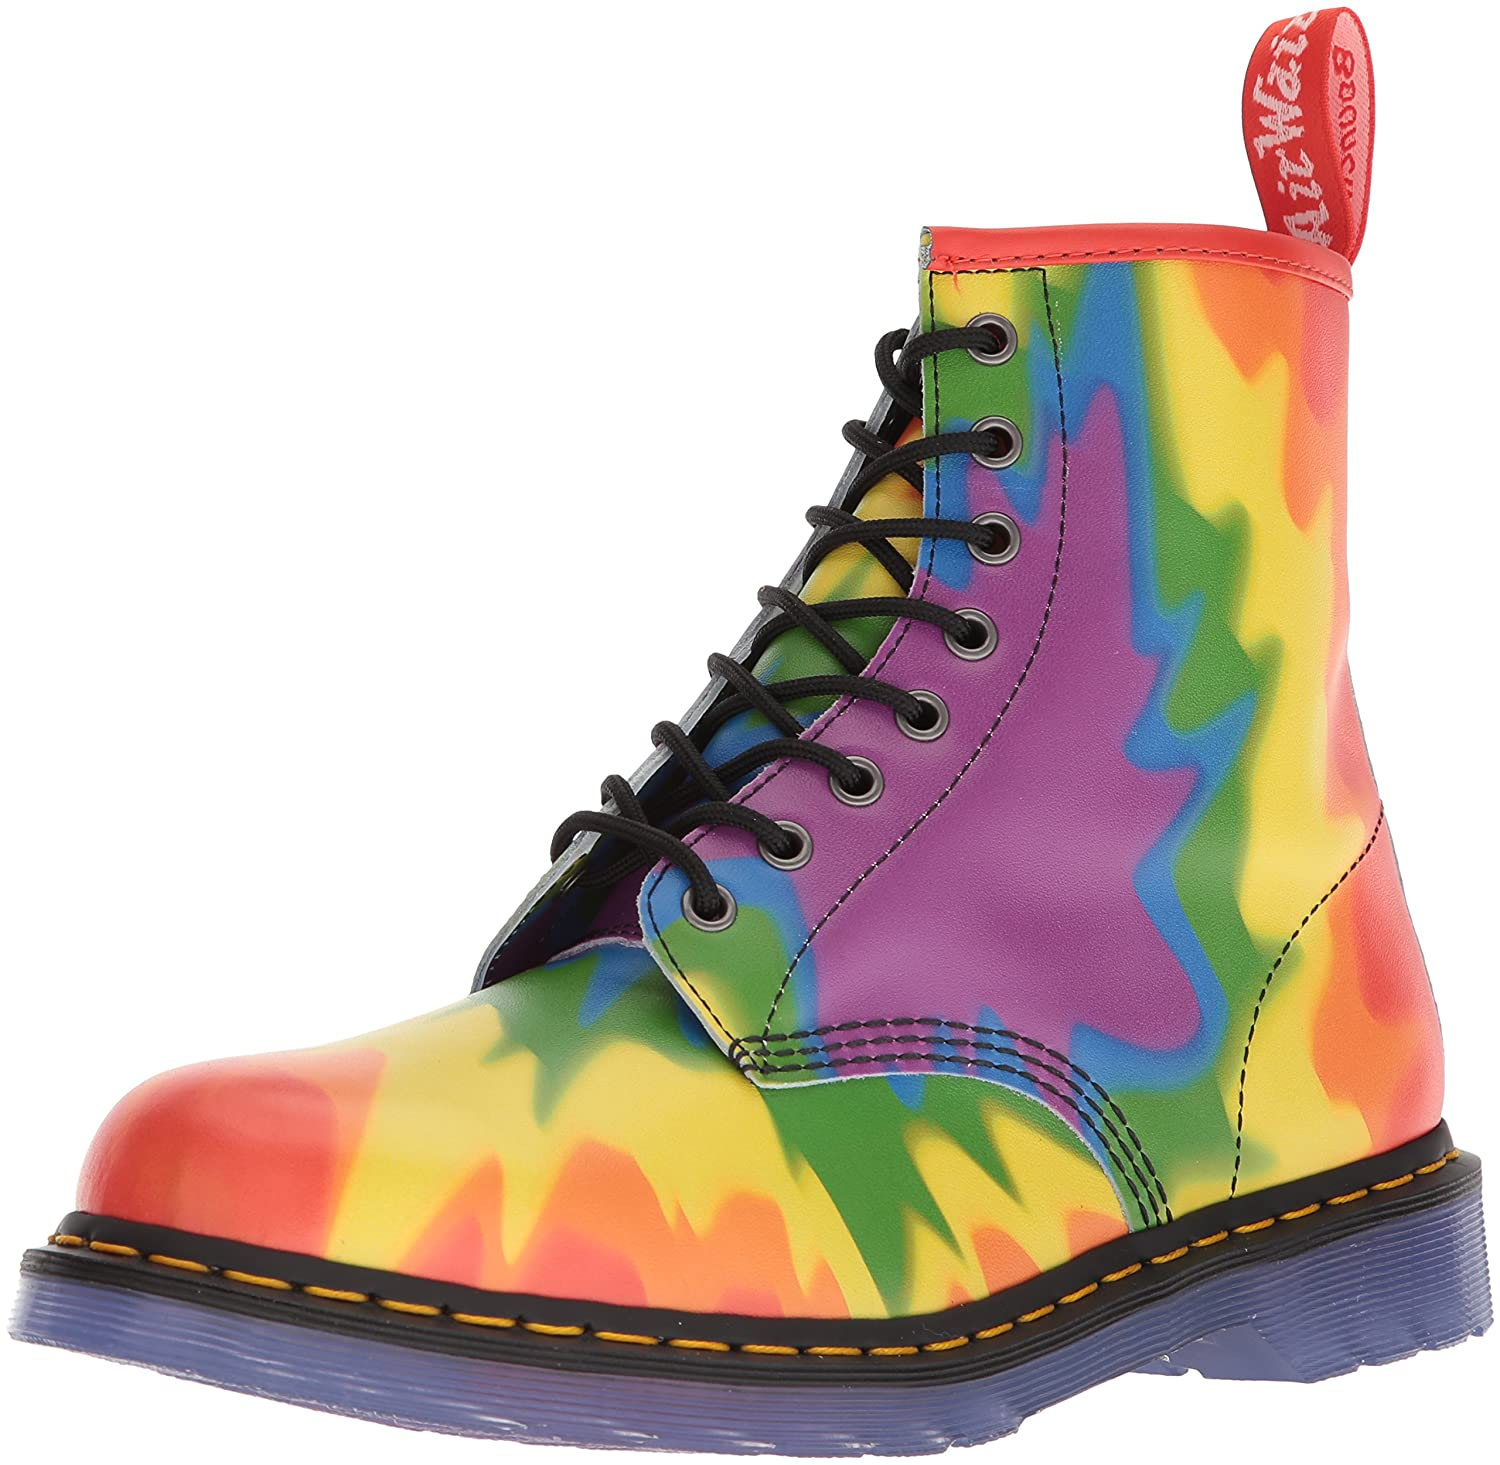 Dr. Martens 1460 Pride Tyedye Fashion Boot (US B072K89KHM 6 Medium UK (US Boot Women's 8, US Men's 7 US)|Multi Pride 89820a